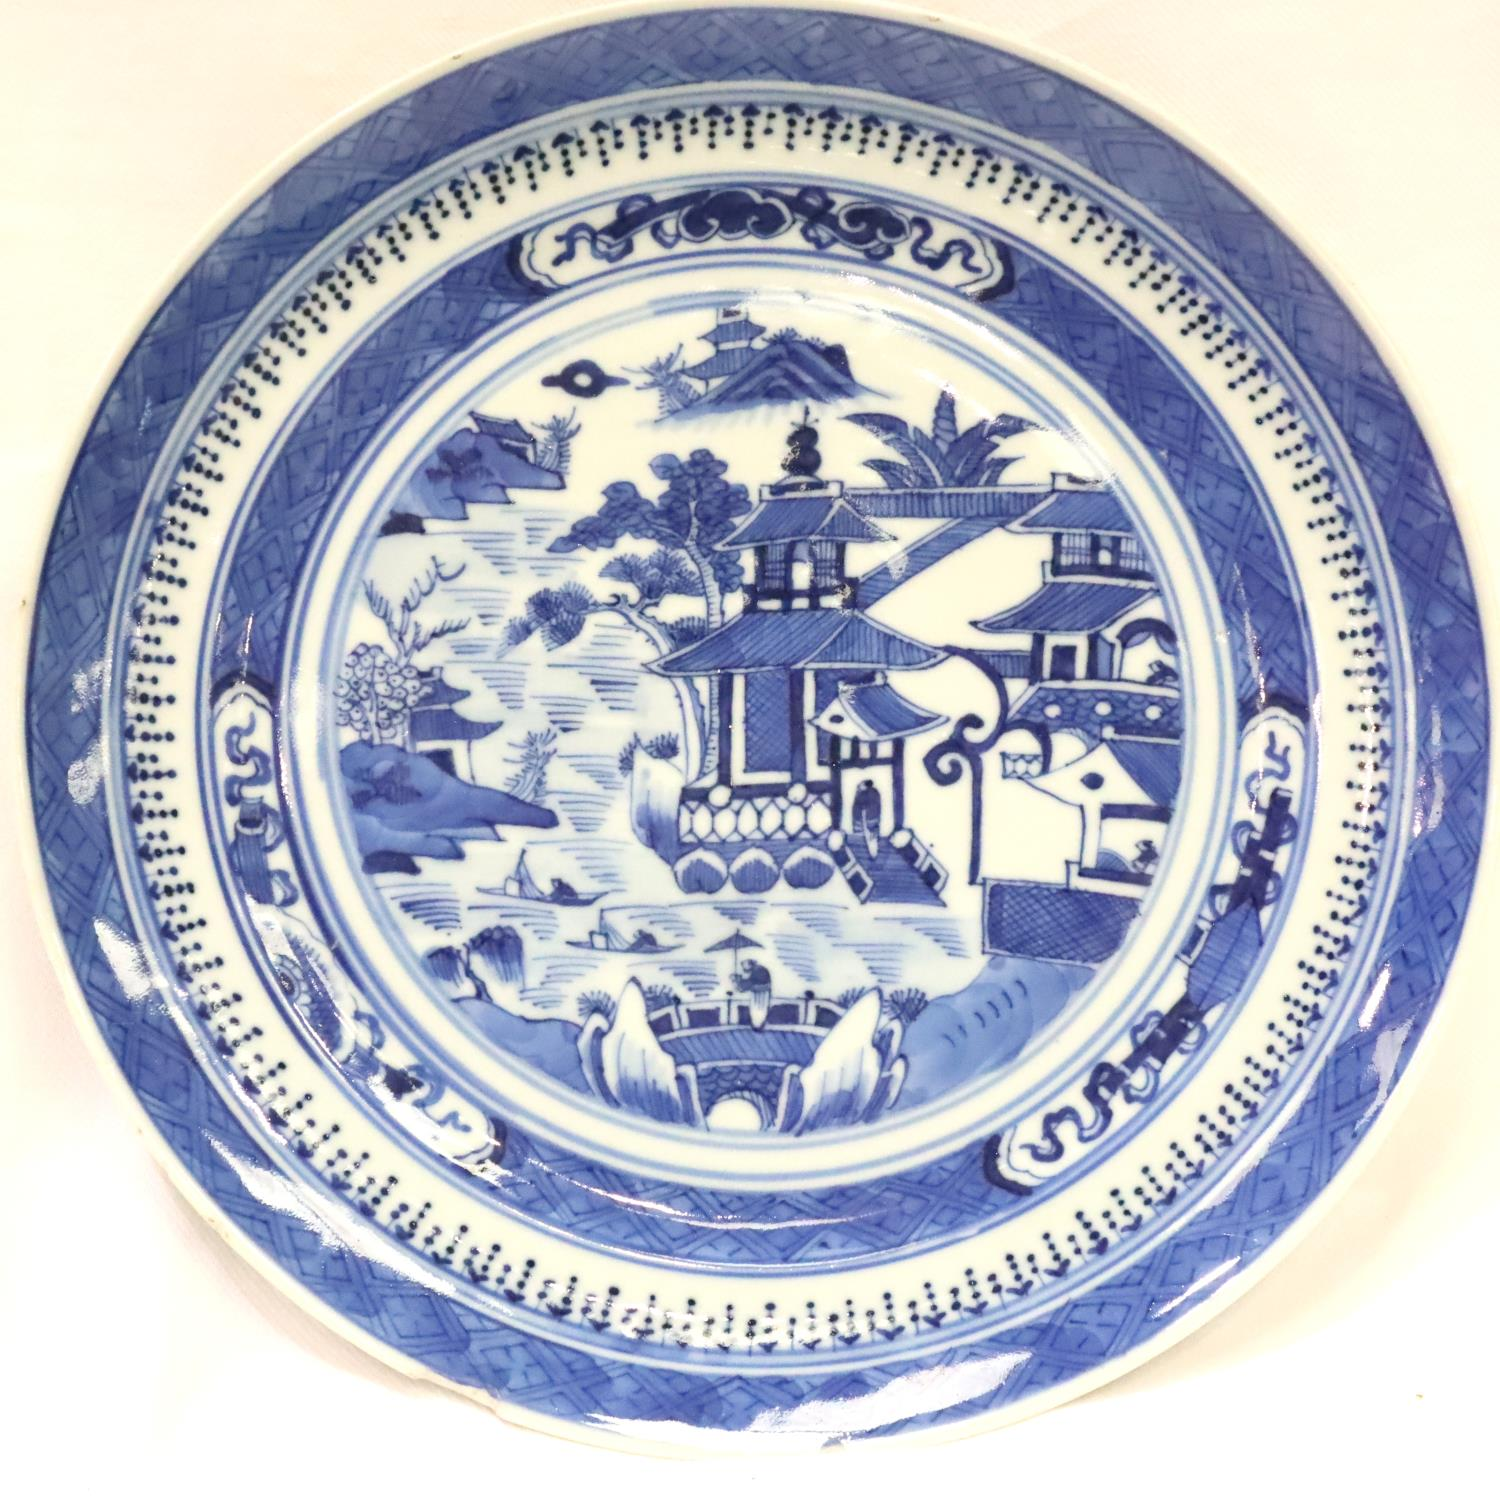 Chinese 18th/19th century glazed plate, displaying figures in a garden with pagodas, D: 24 cm. P&P